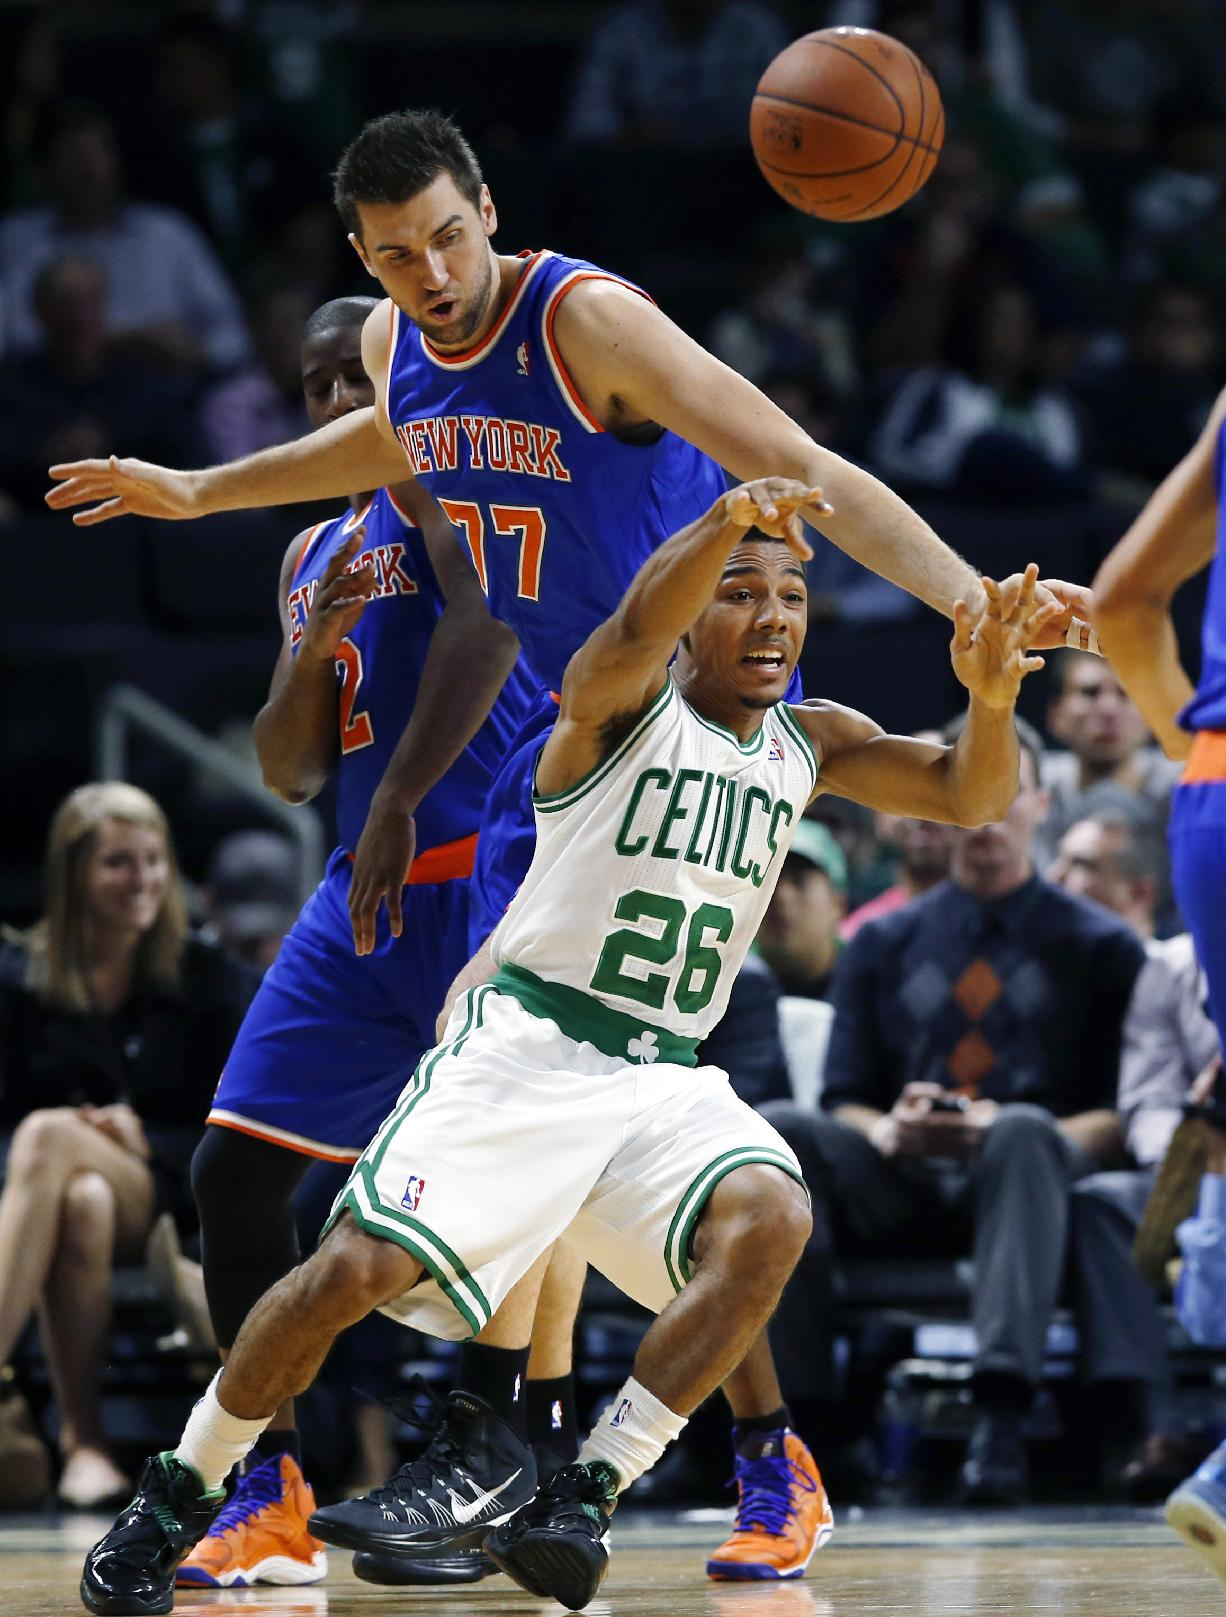 Boston Celtics guard Phil Pressey (26) passes the ball against the defense of New York Knicks forward Andrea Bargnani (77) during the first half of a preseason NBA basketball game in Providence, R.I., Wednesday, Oct. 9, 2013